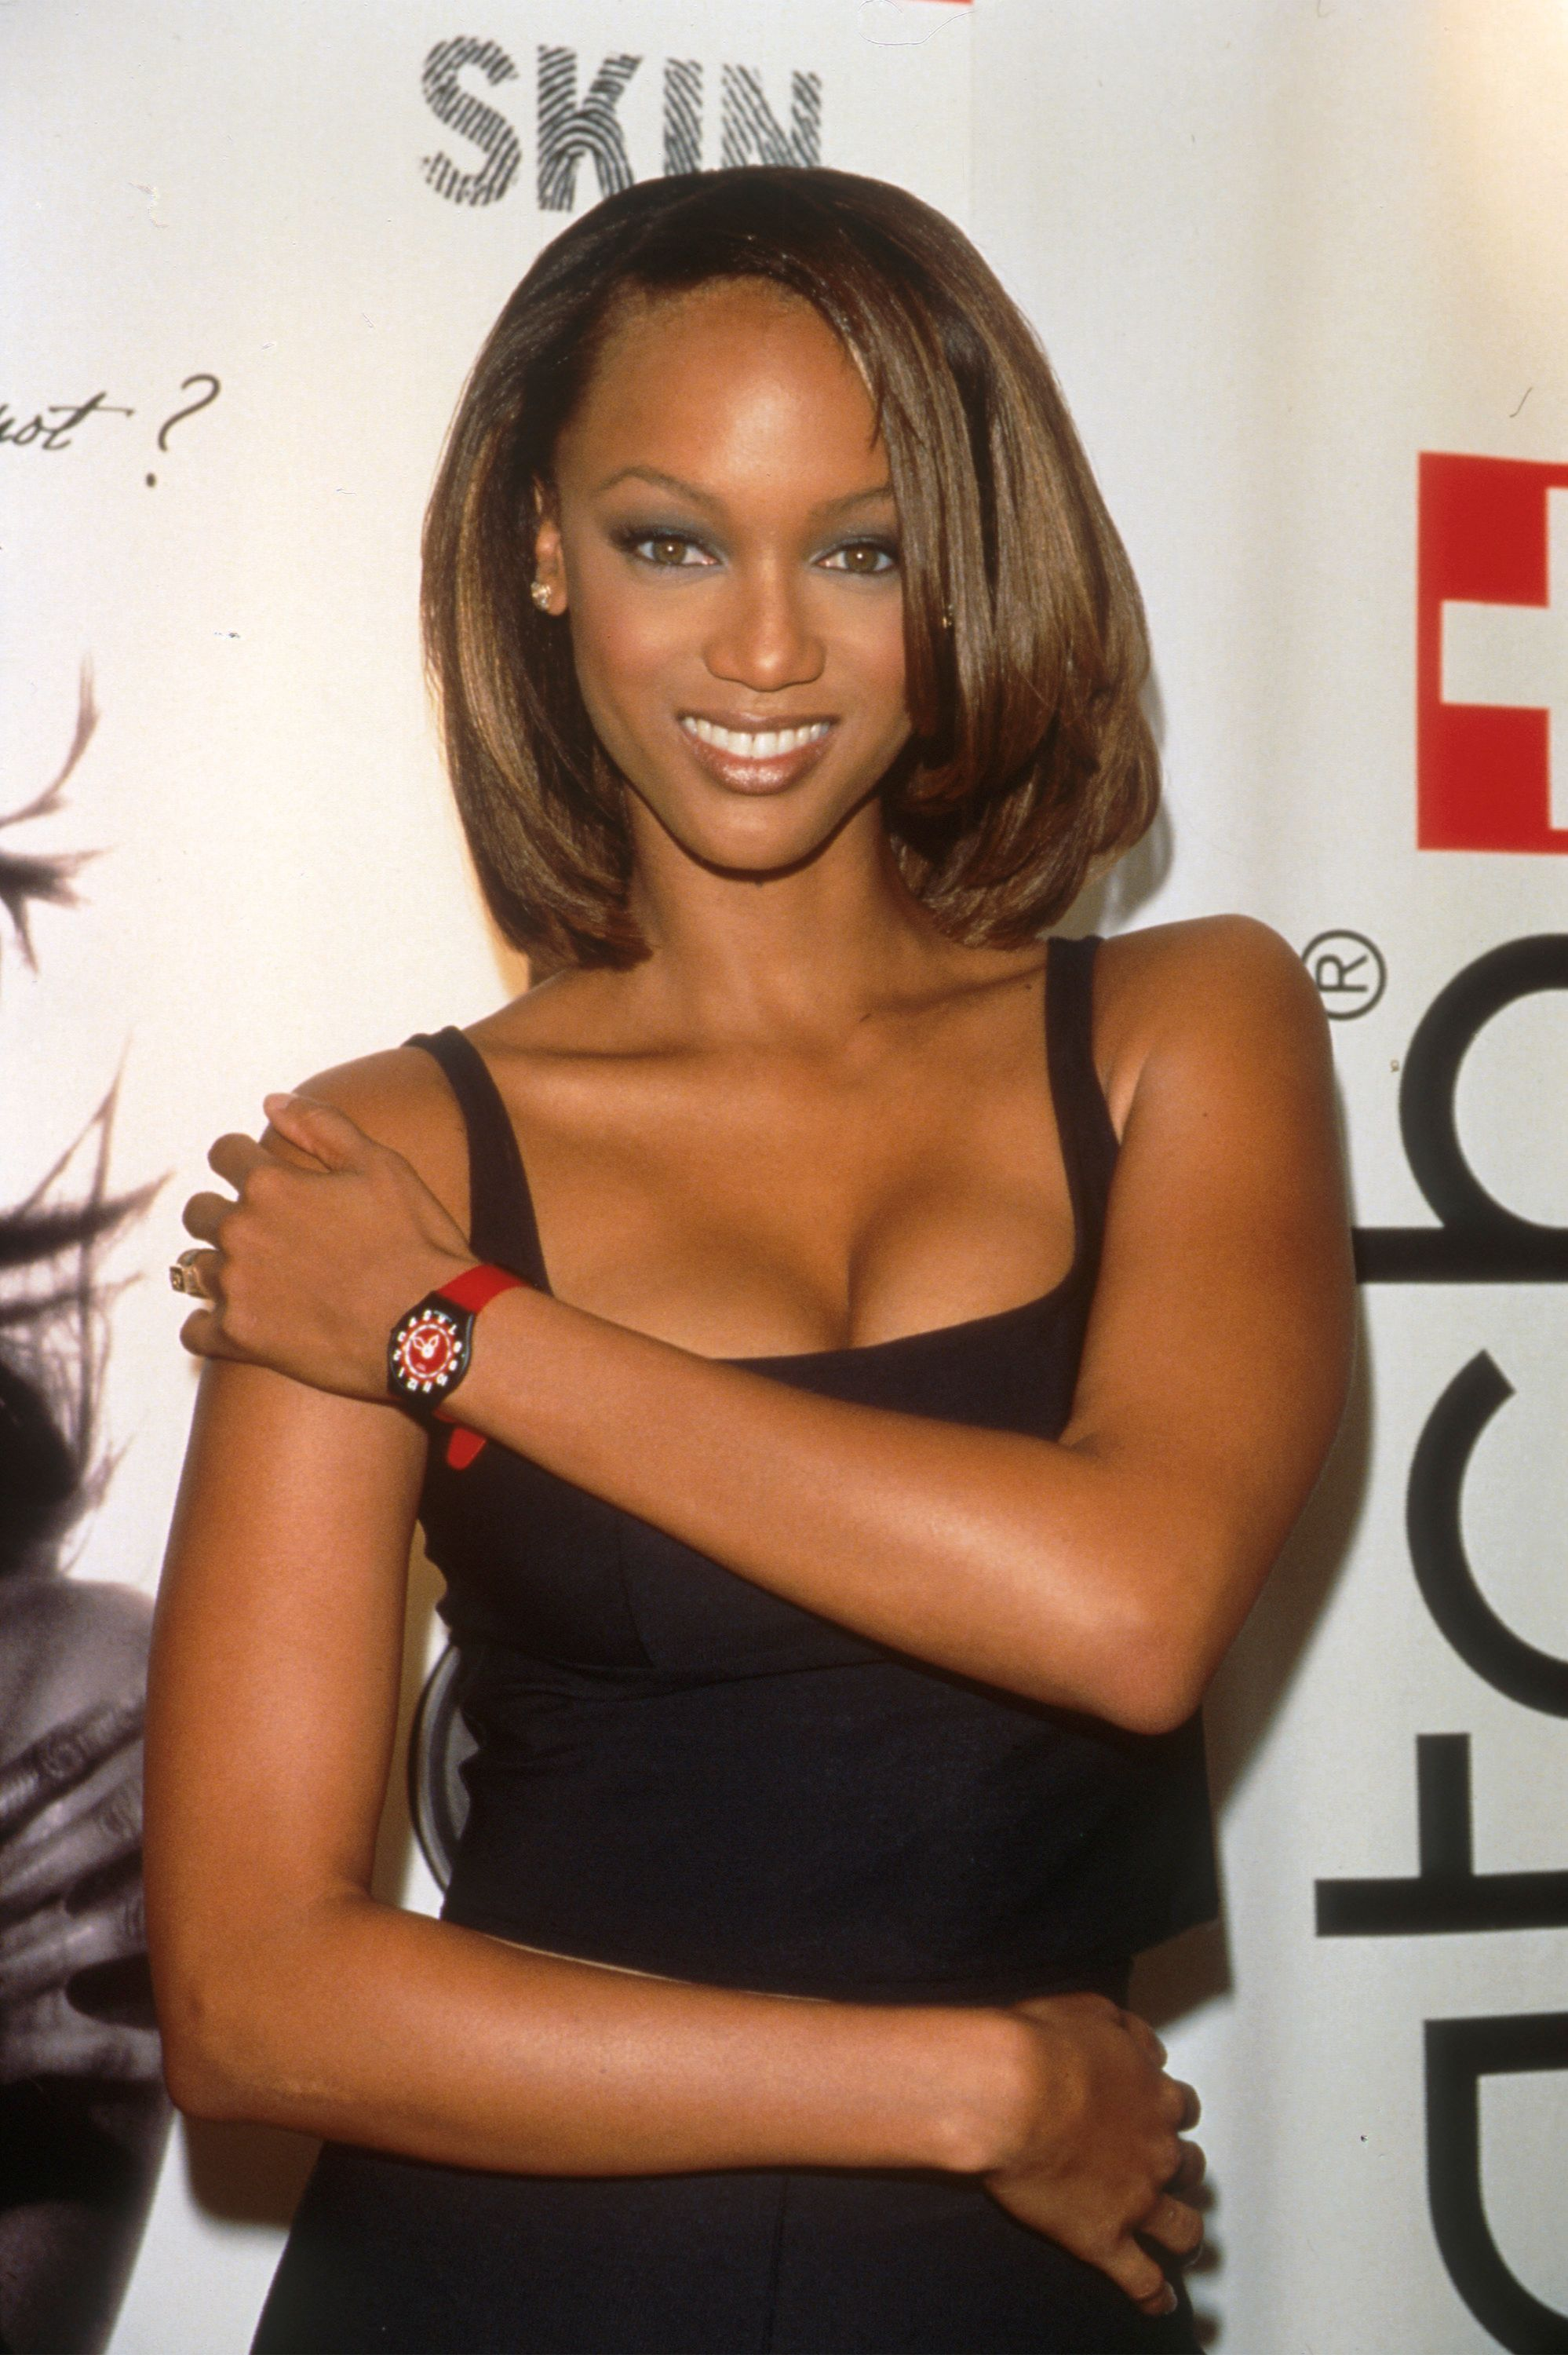 """Tyra Banks advertising the new Swatch """"Skin"""" on October 23, 1997 in New York. 